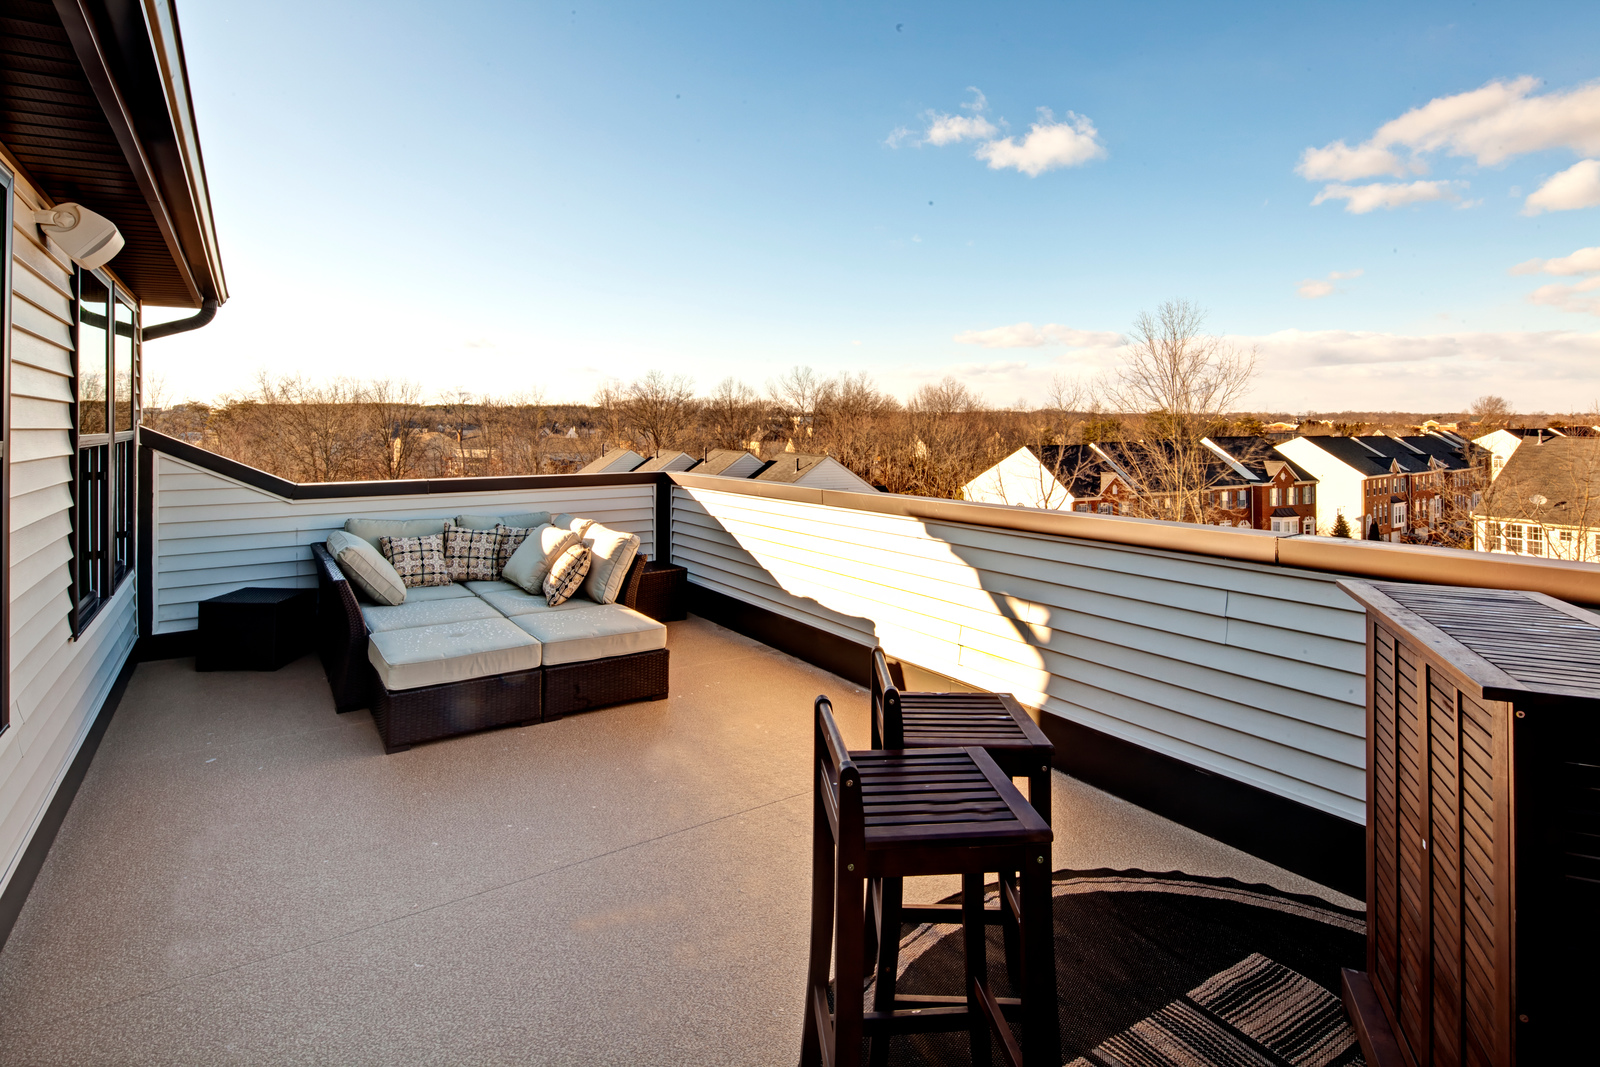 Enjoy the view from your rooftop deck at Westmoore!